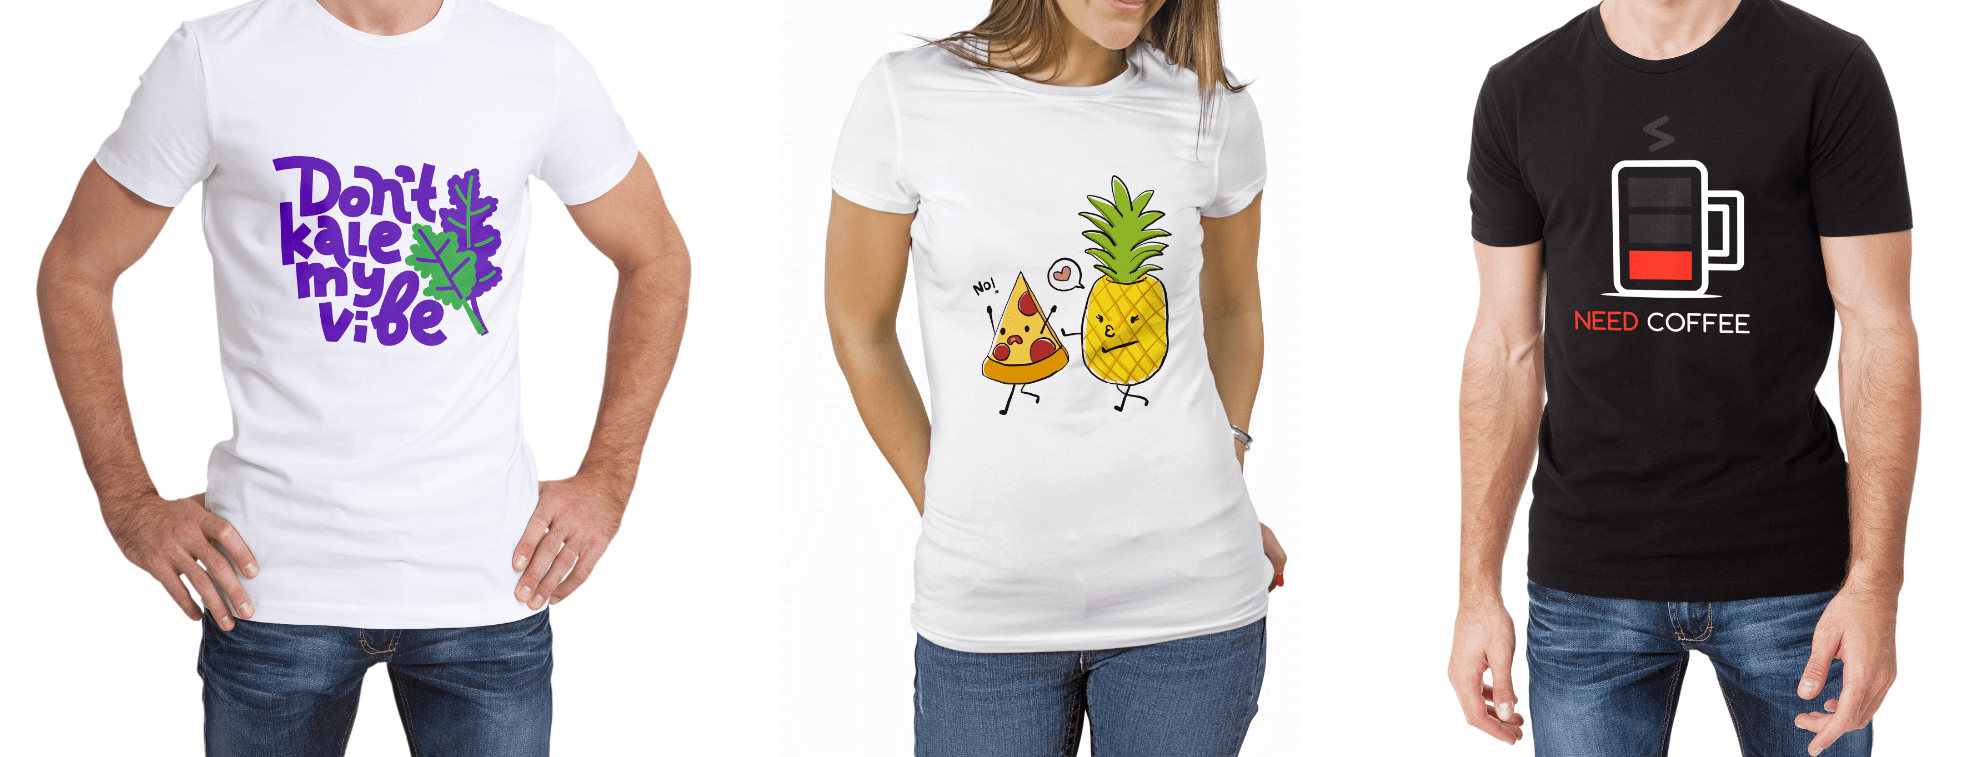 Different t-shirt designs with funny illustrations and images